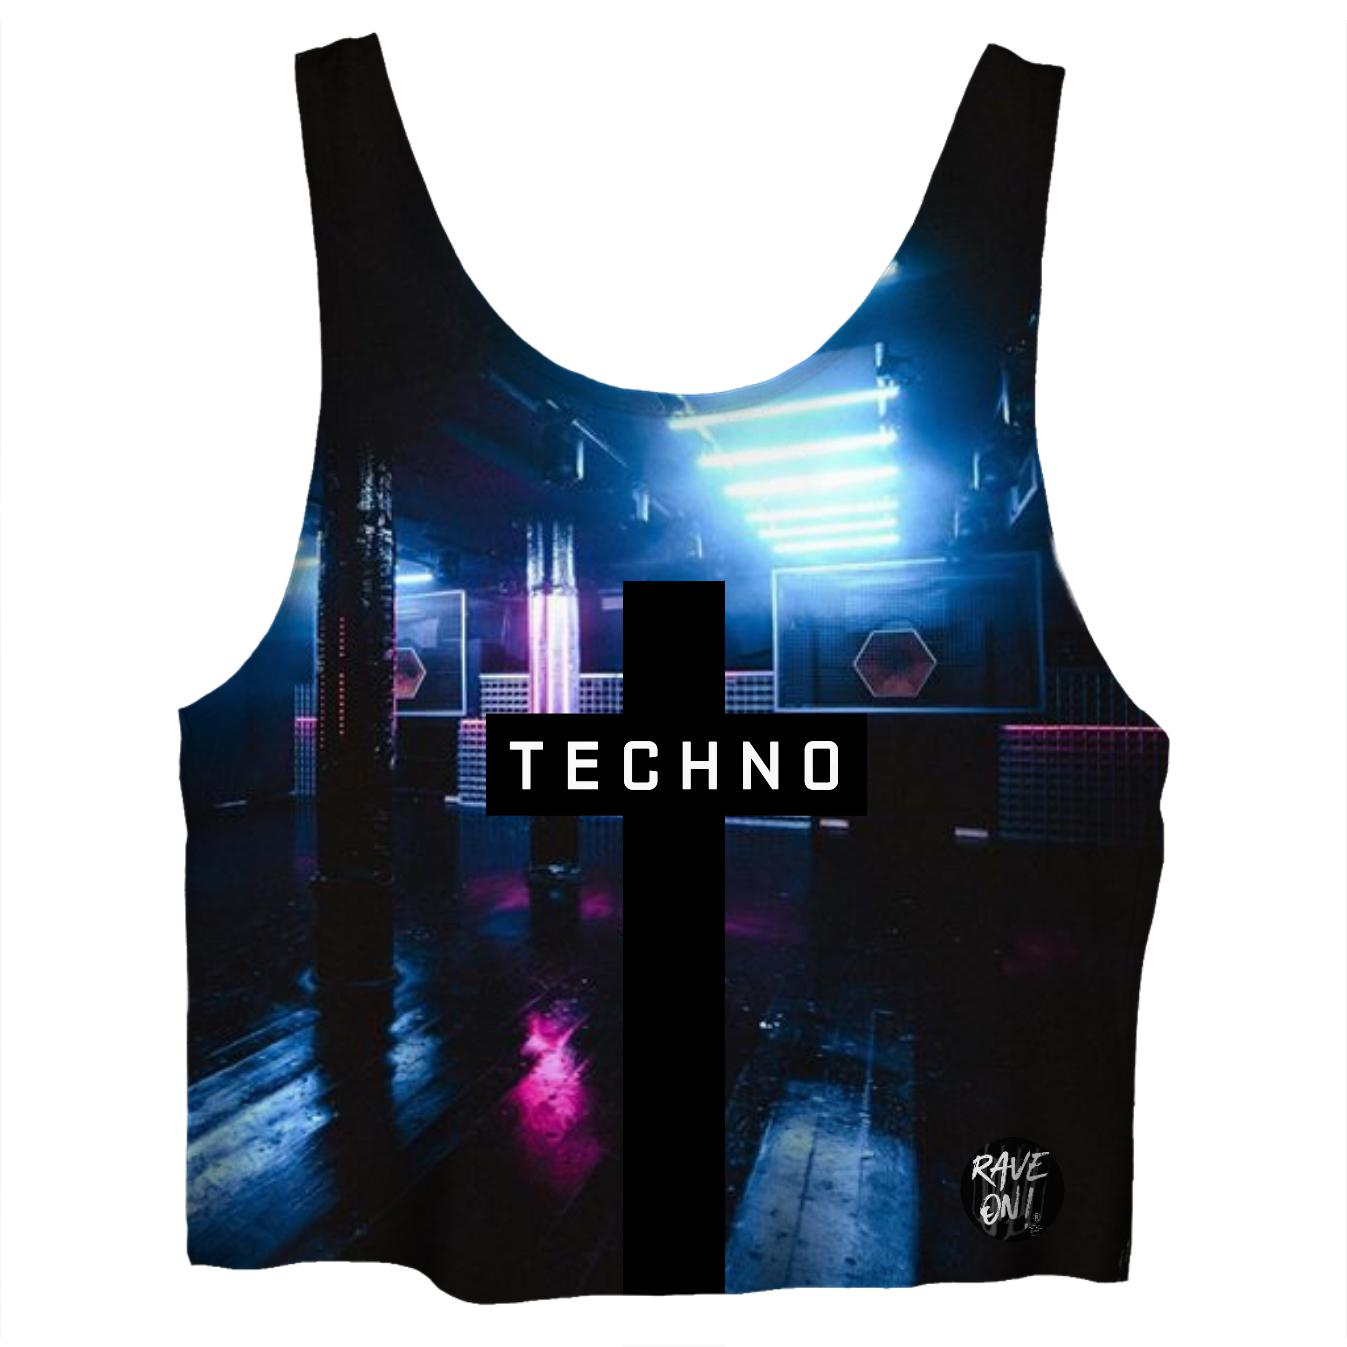 TECHNO Club CropTop - Rave On!® All-Over-360Print Crop Tops - Rave On!® der Club & Techno Szene Shop für Coole Junge Mode Streetwear Style & Fashion Outfits + Sexy Festival 420 Stuff